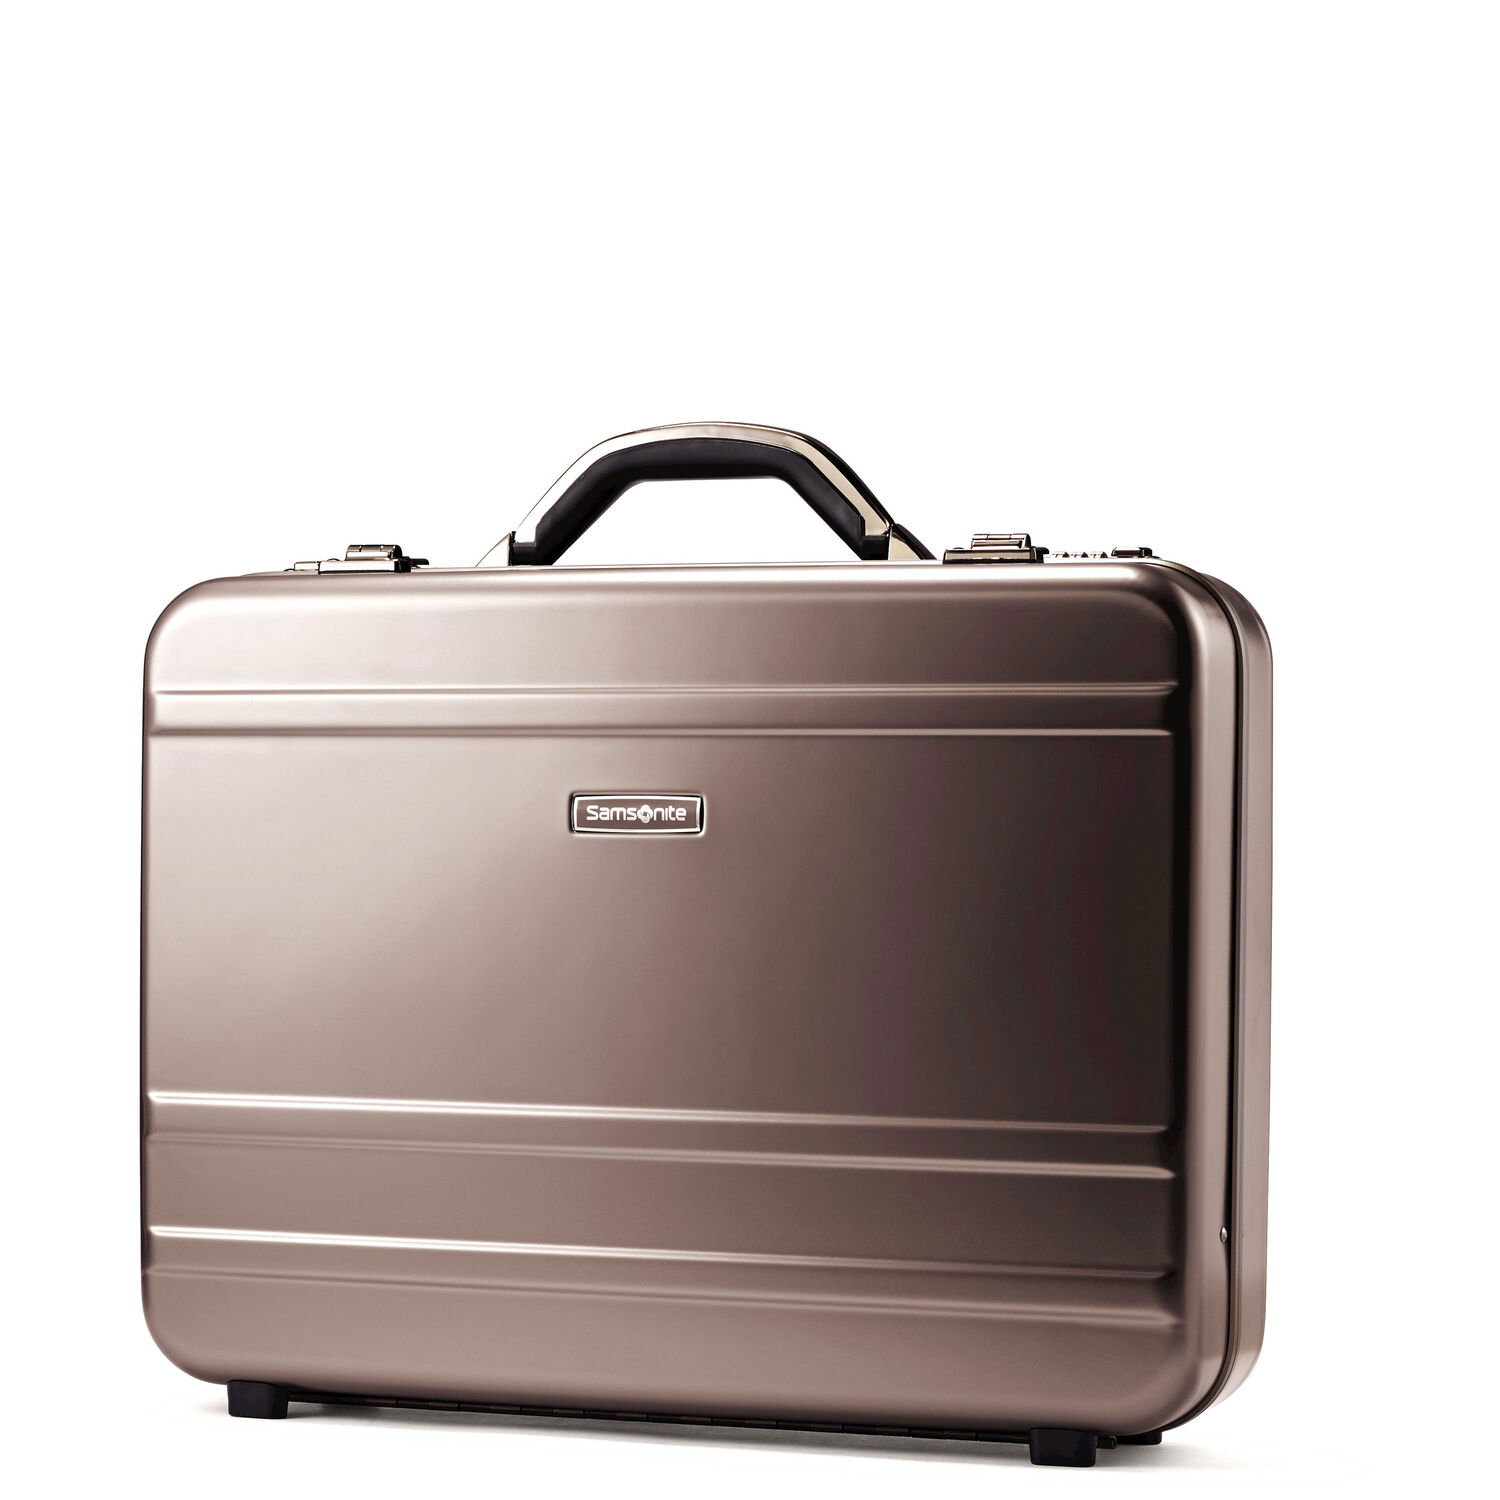 Samsonite Delegate 3 1 Attache